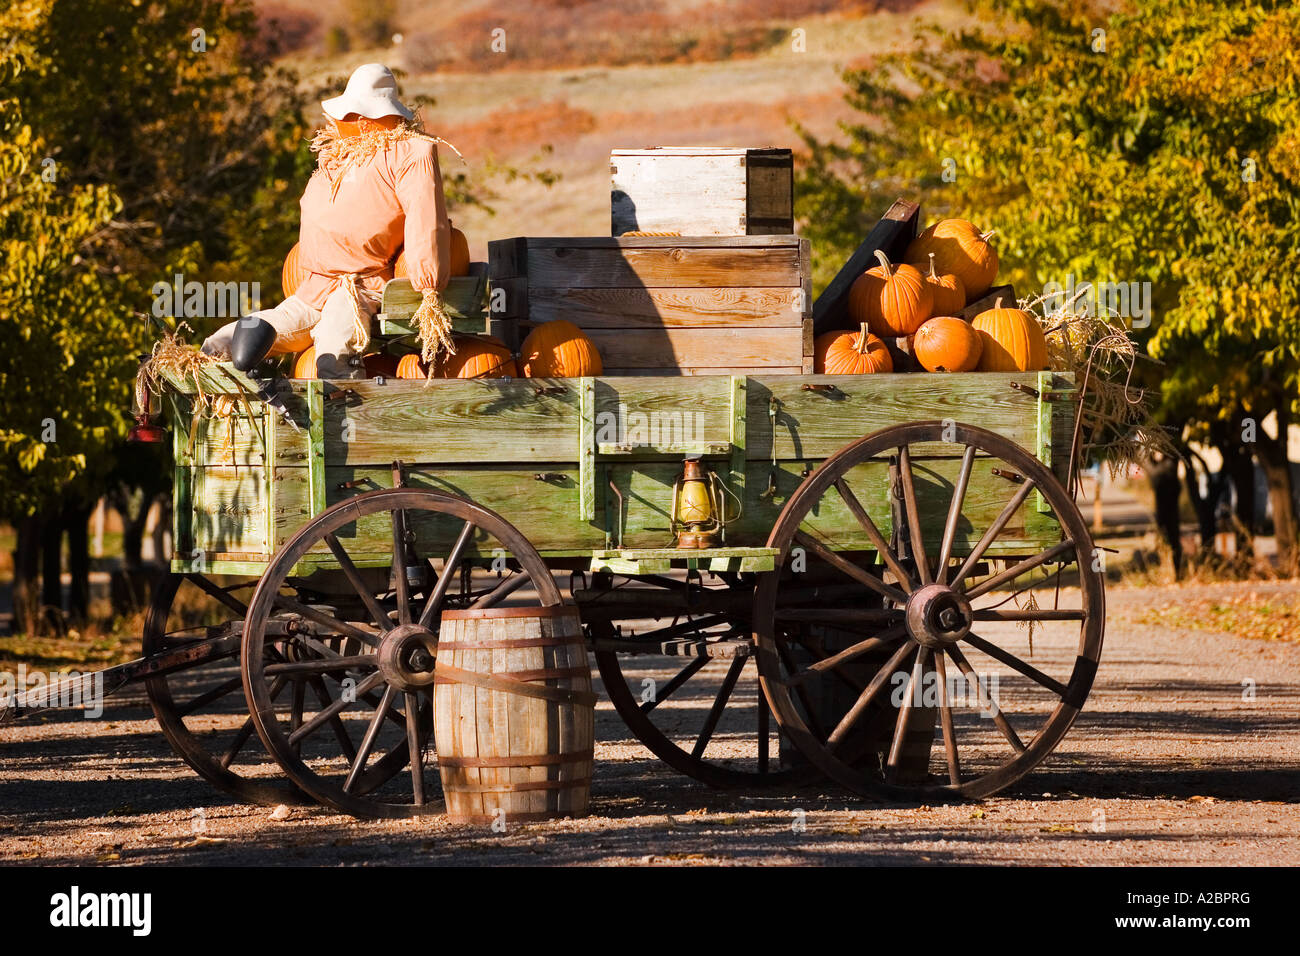 Antique Farm Wagon In Old Deseret Village In Salt Lake City Utah Decorated A Bprg on Old Deseret Village Salt Lake City